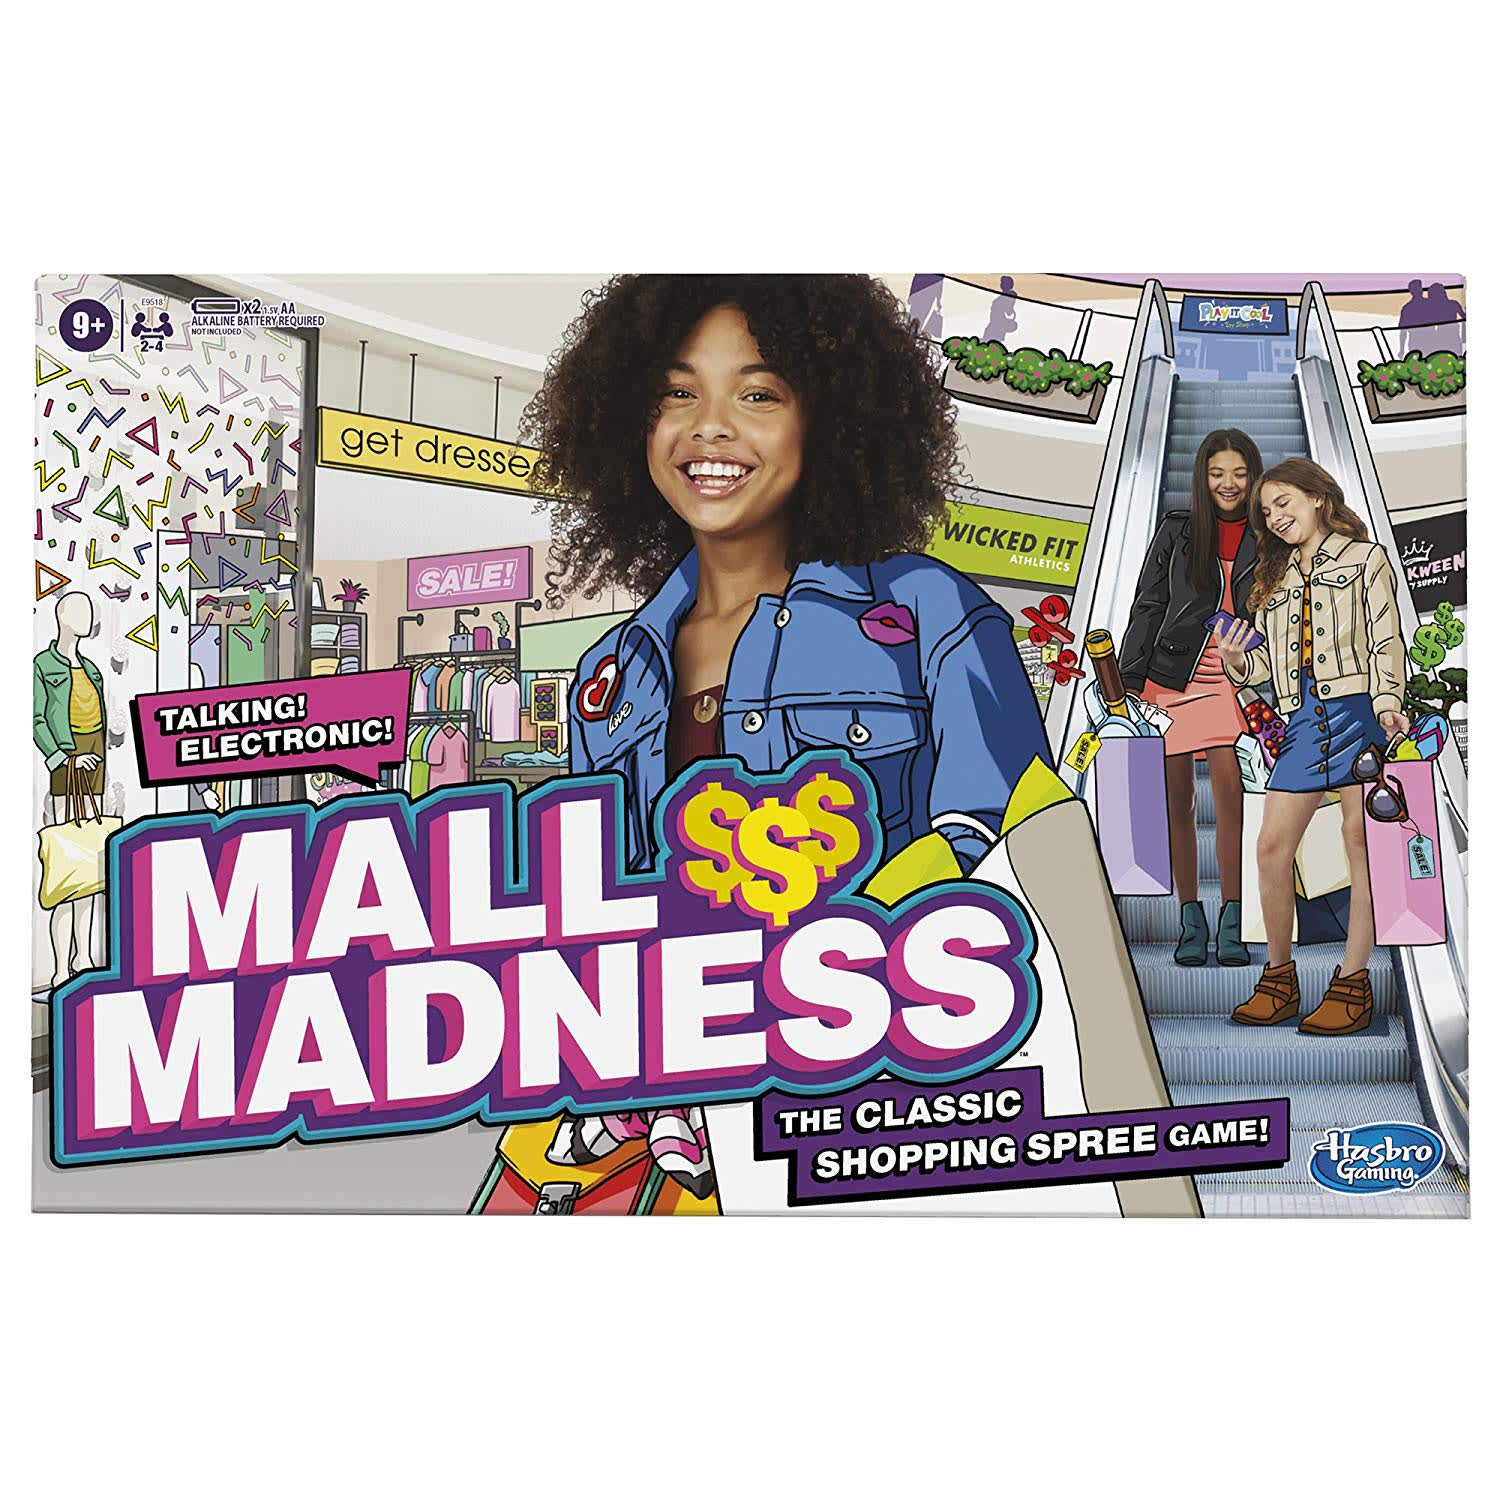 Hasbro is Bringing Back Mall Madness, the Unofficial Board Game of Teenage Sleepovers